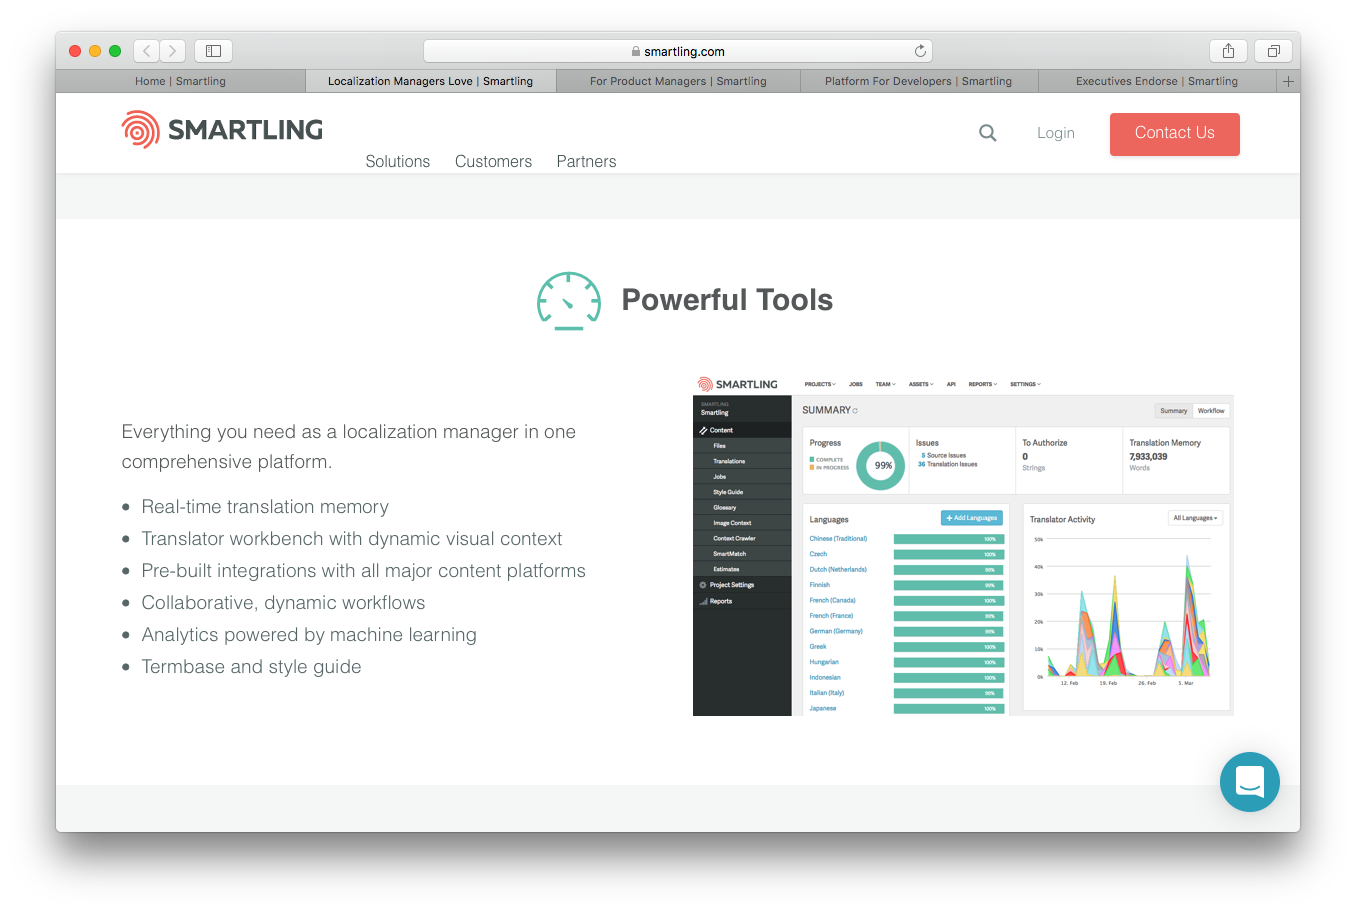 Smartling solutions screenshot localization managers powerful tools real time translation memory dynamic visual concept integration collaborative dynamic workflows marine learning analytics